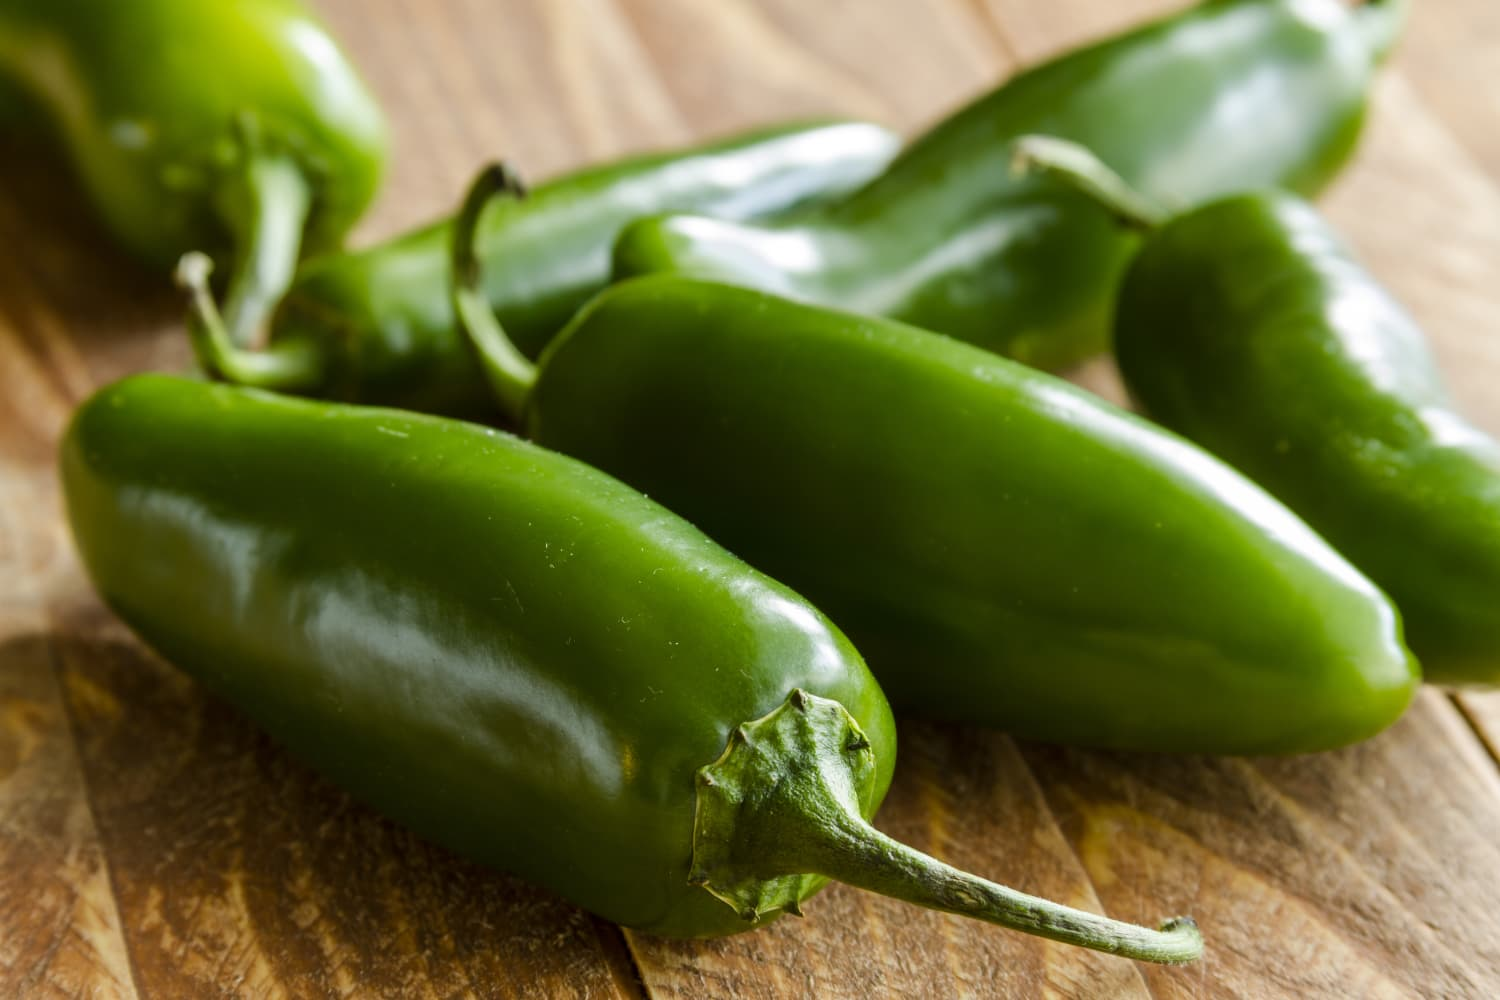 The One Thing You (Probably) Didn't Know About Jalapeños